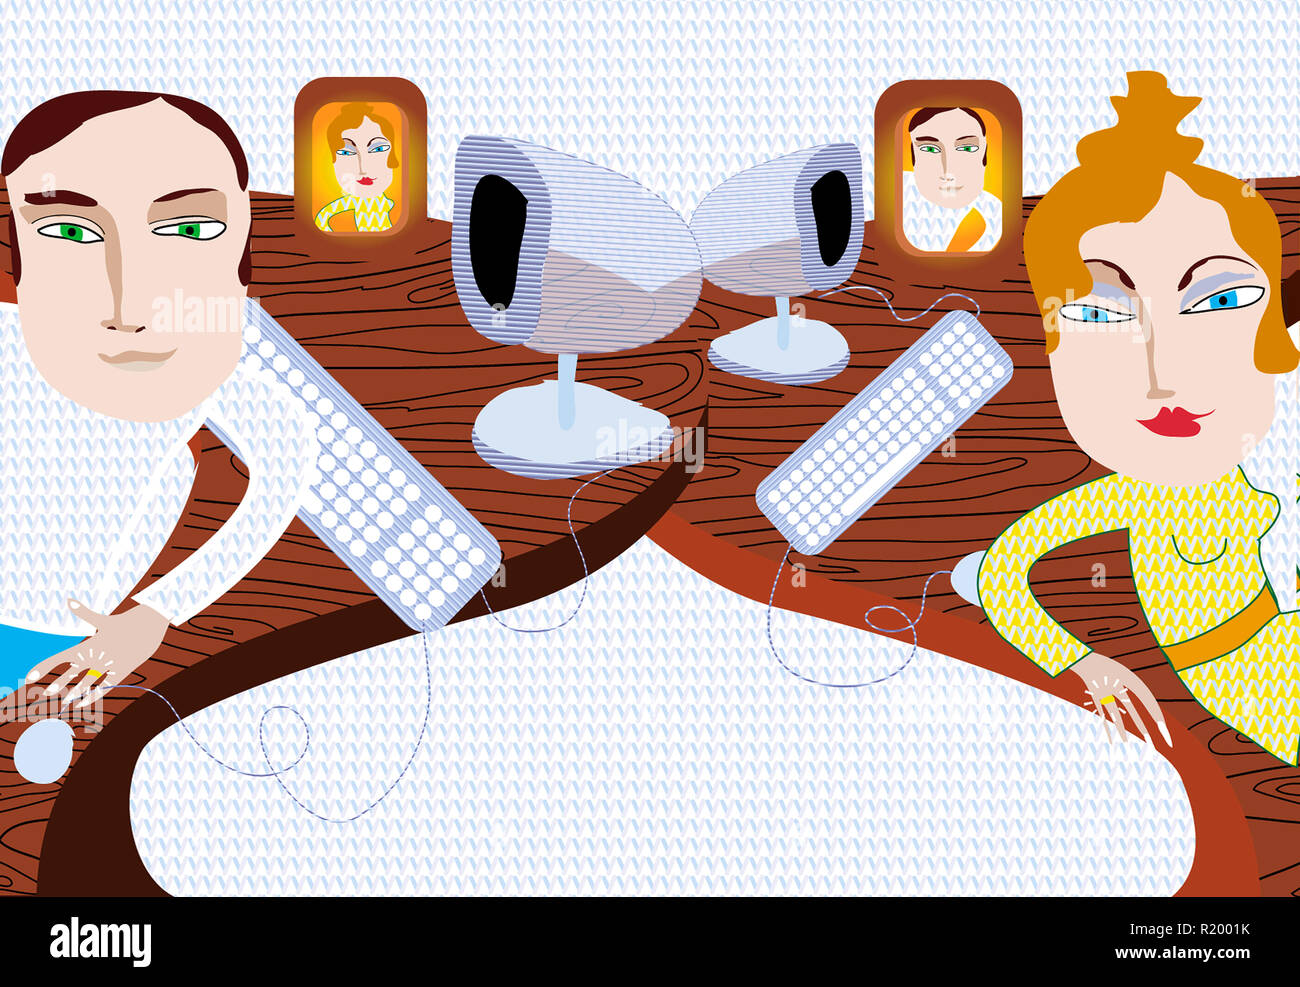 Married couple at work - Stock Image